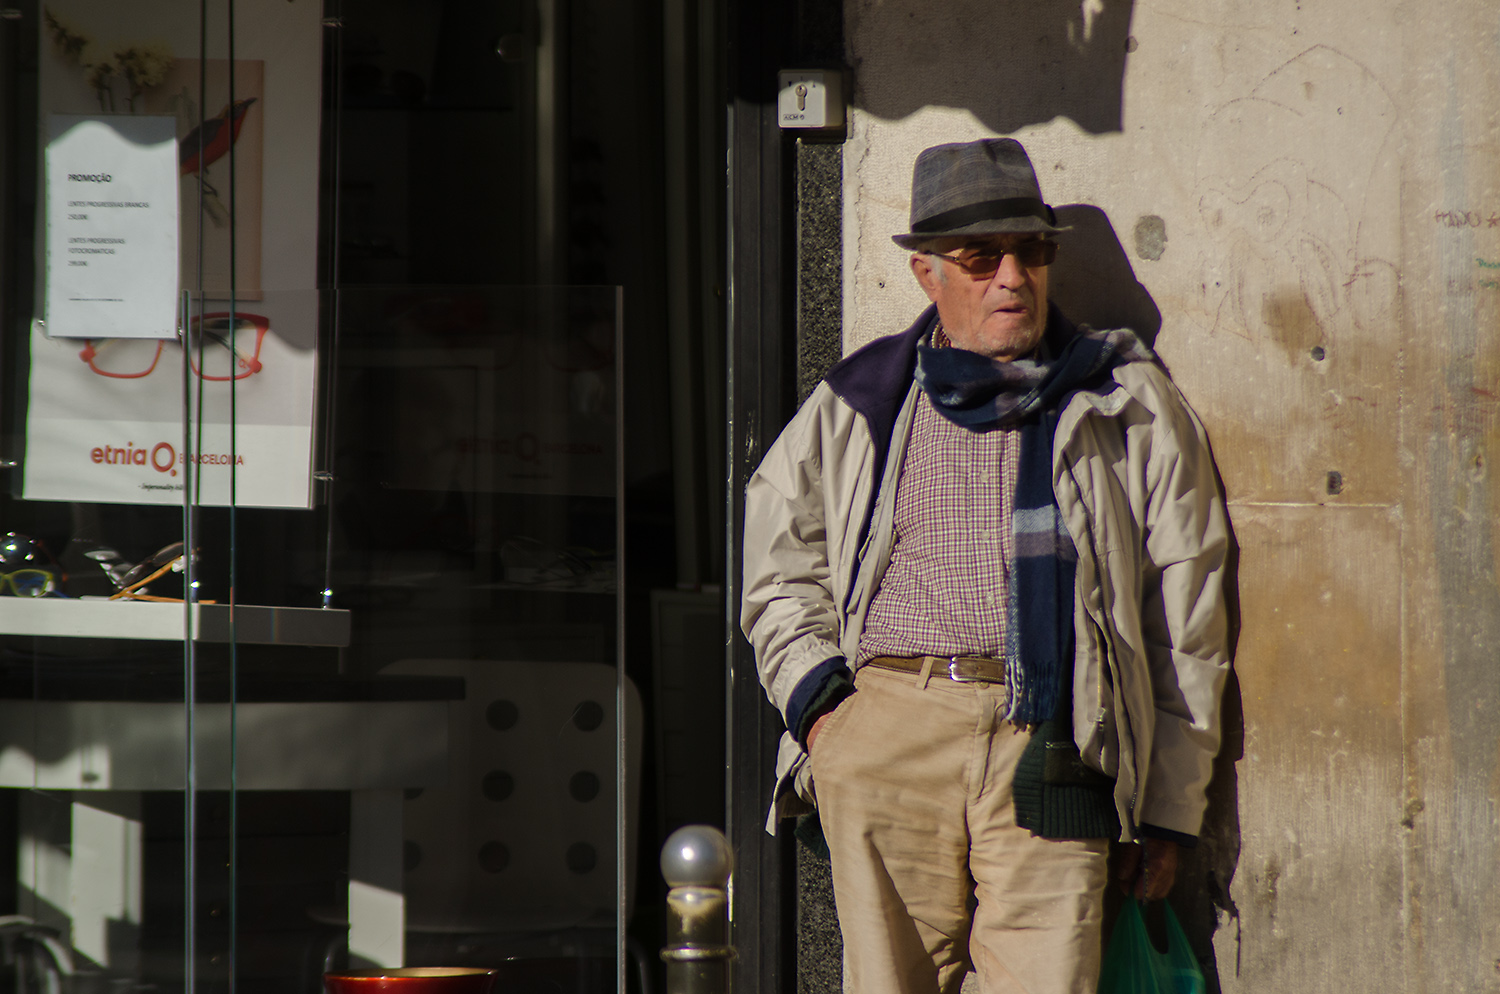 The photo of this old man was taken during a photo tour in Lisbon. Something draw my eye to him, probably the cool hat. My first attempt framed the composition too wide. Your eye strugles to stay with the man but ends up wondering off.